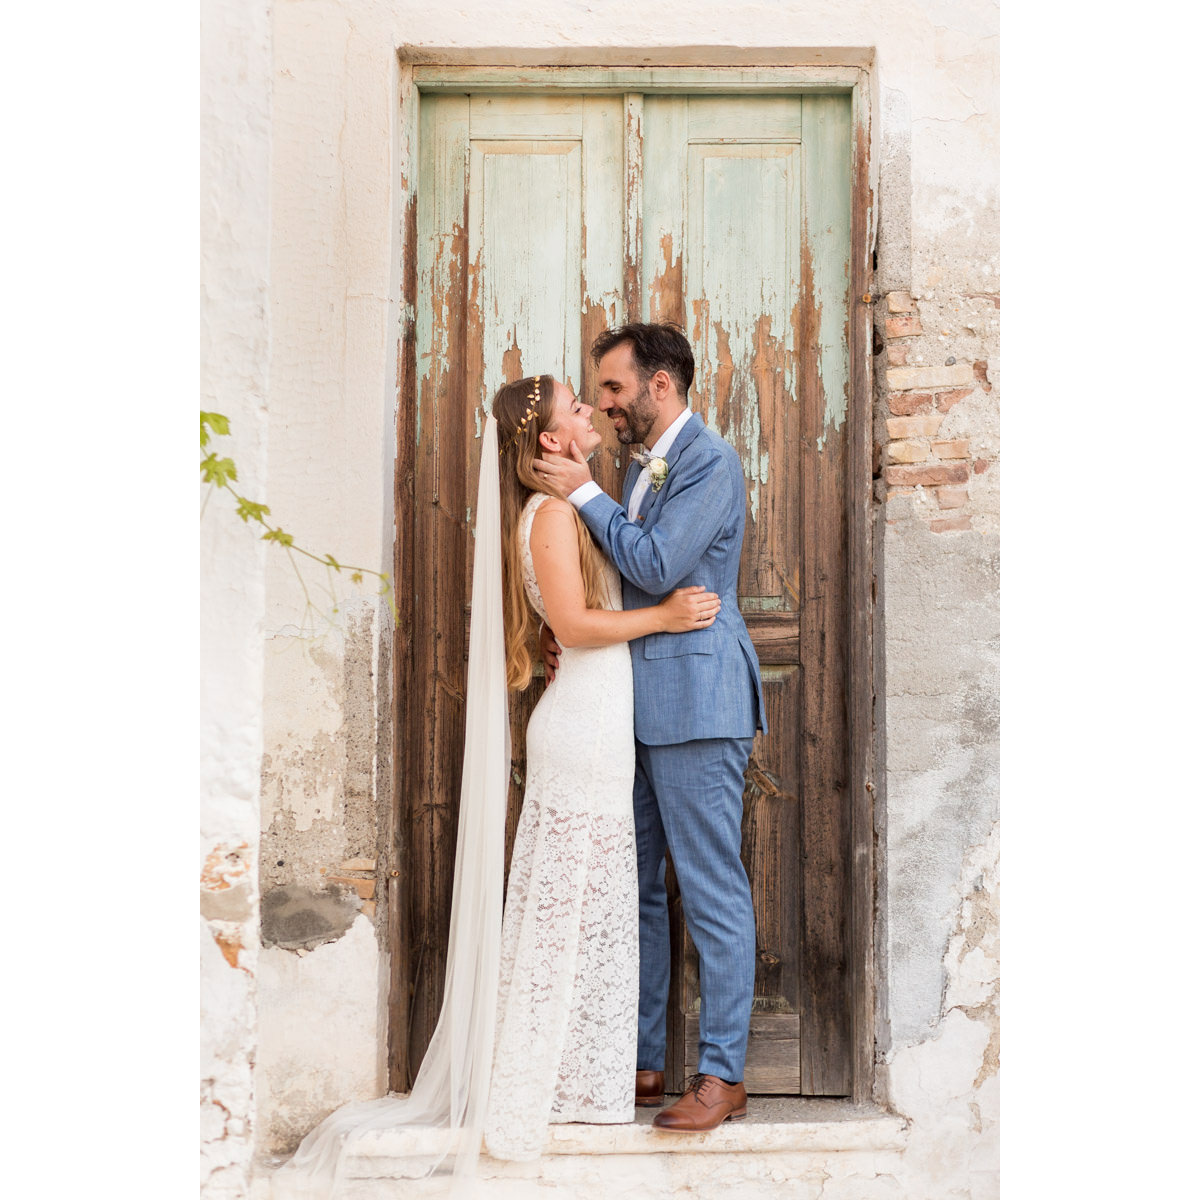 wedding photo-shoot in Crete